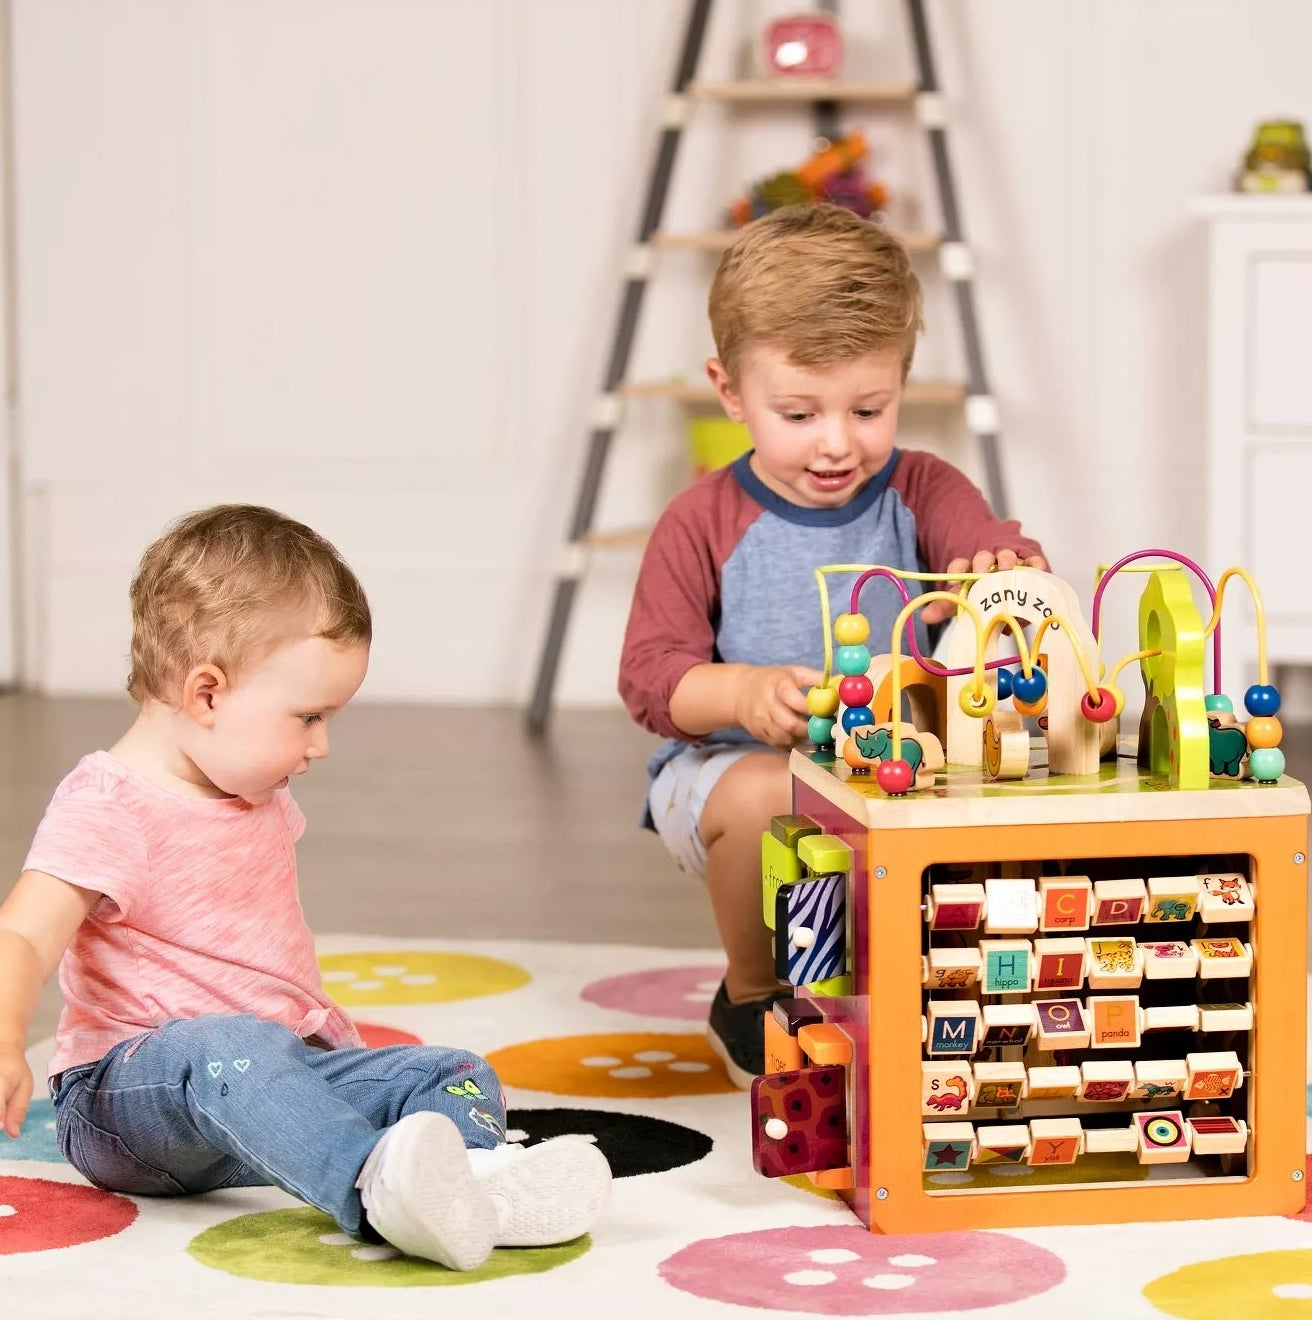 A baby and a toddler playing with the activity cube with multiple surfaces and games